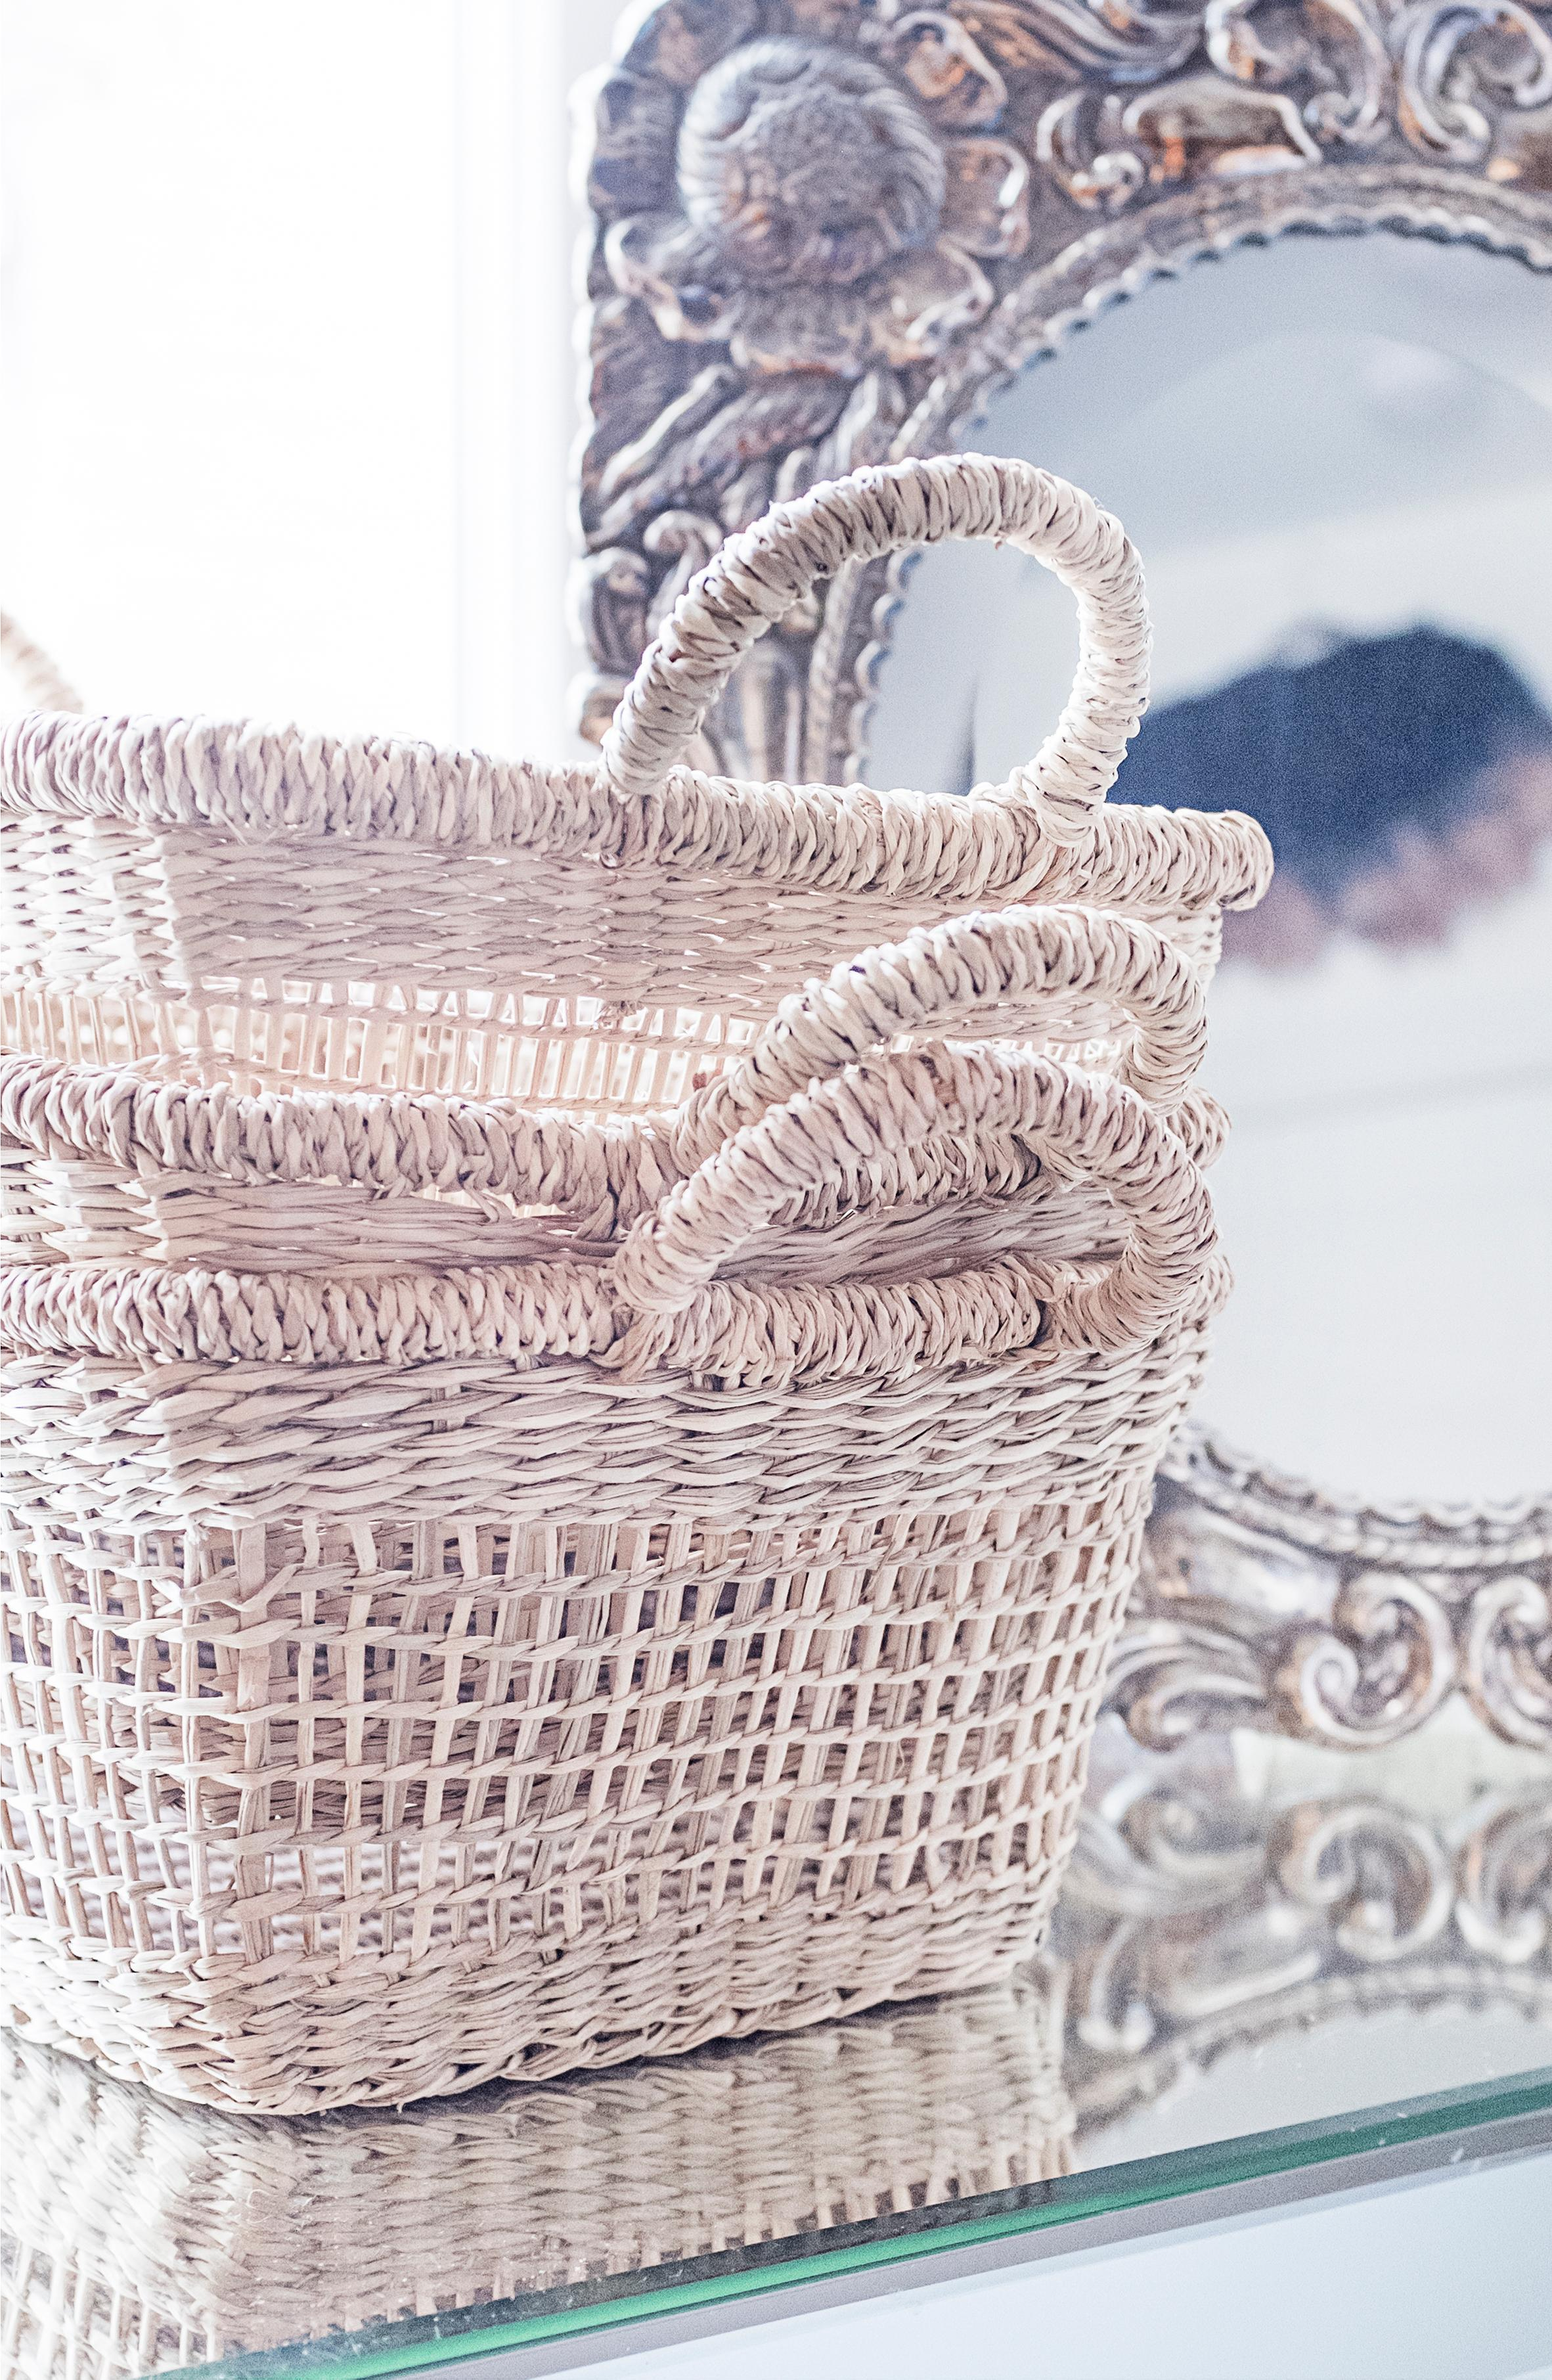 A great way to stay organized is to have bags and baskets stacked and labeled with your guests' names. When your guests arrive they can easily carry them around and put smaller accessories and jewelry into the baskets and larger items such as shoes, hats or clothing in the bags. (Image: Ashley Hafstead)